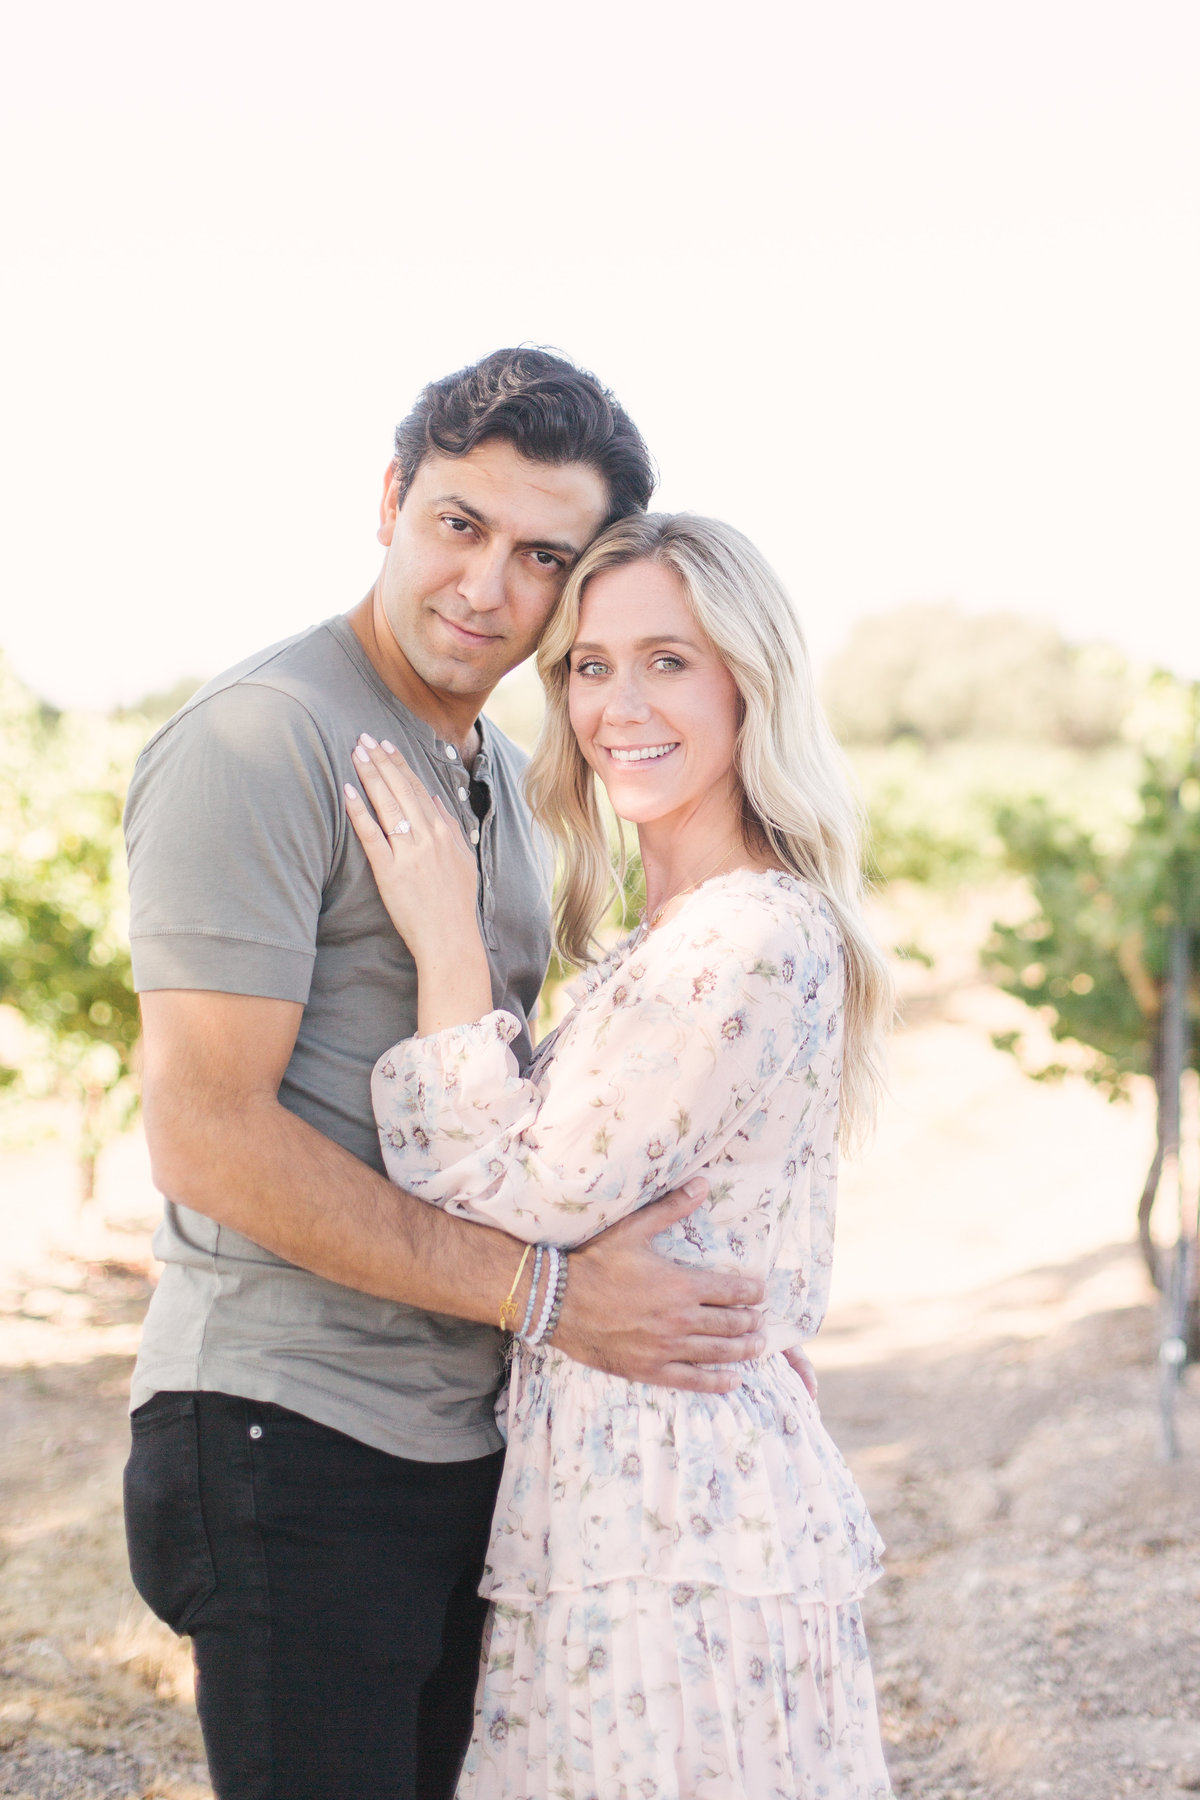 All smiles after Firestone Vineyard proposal